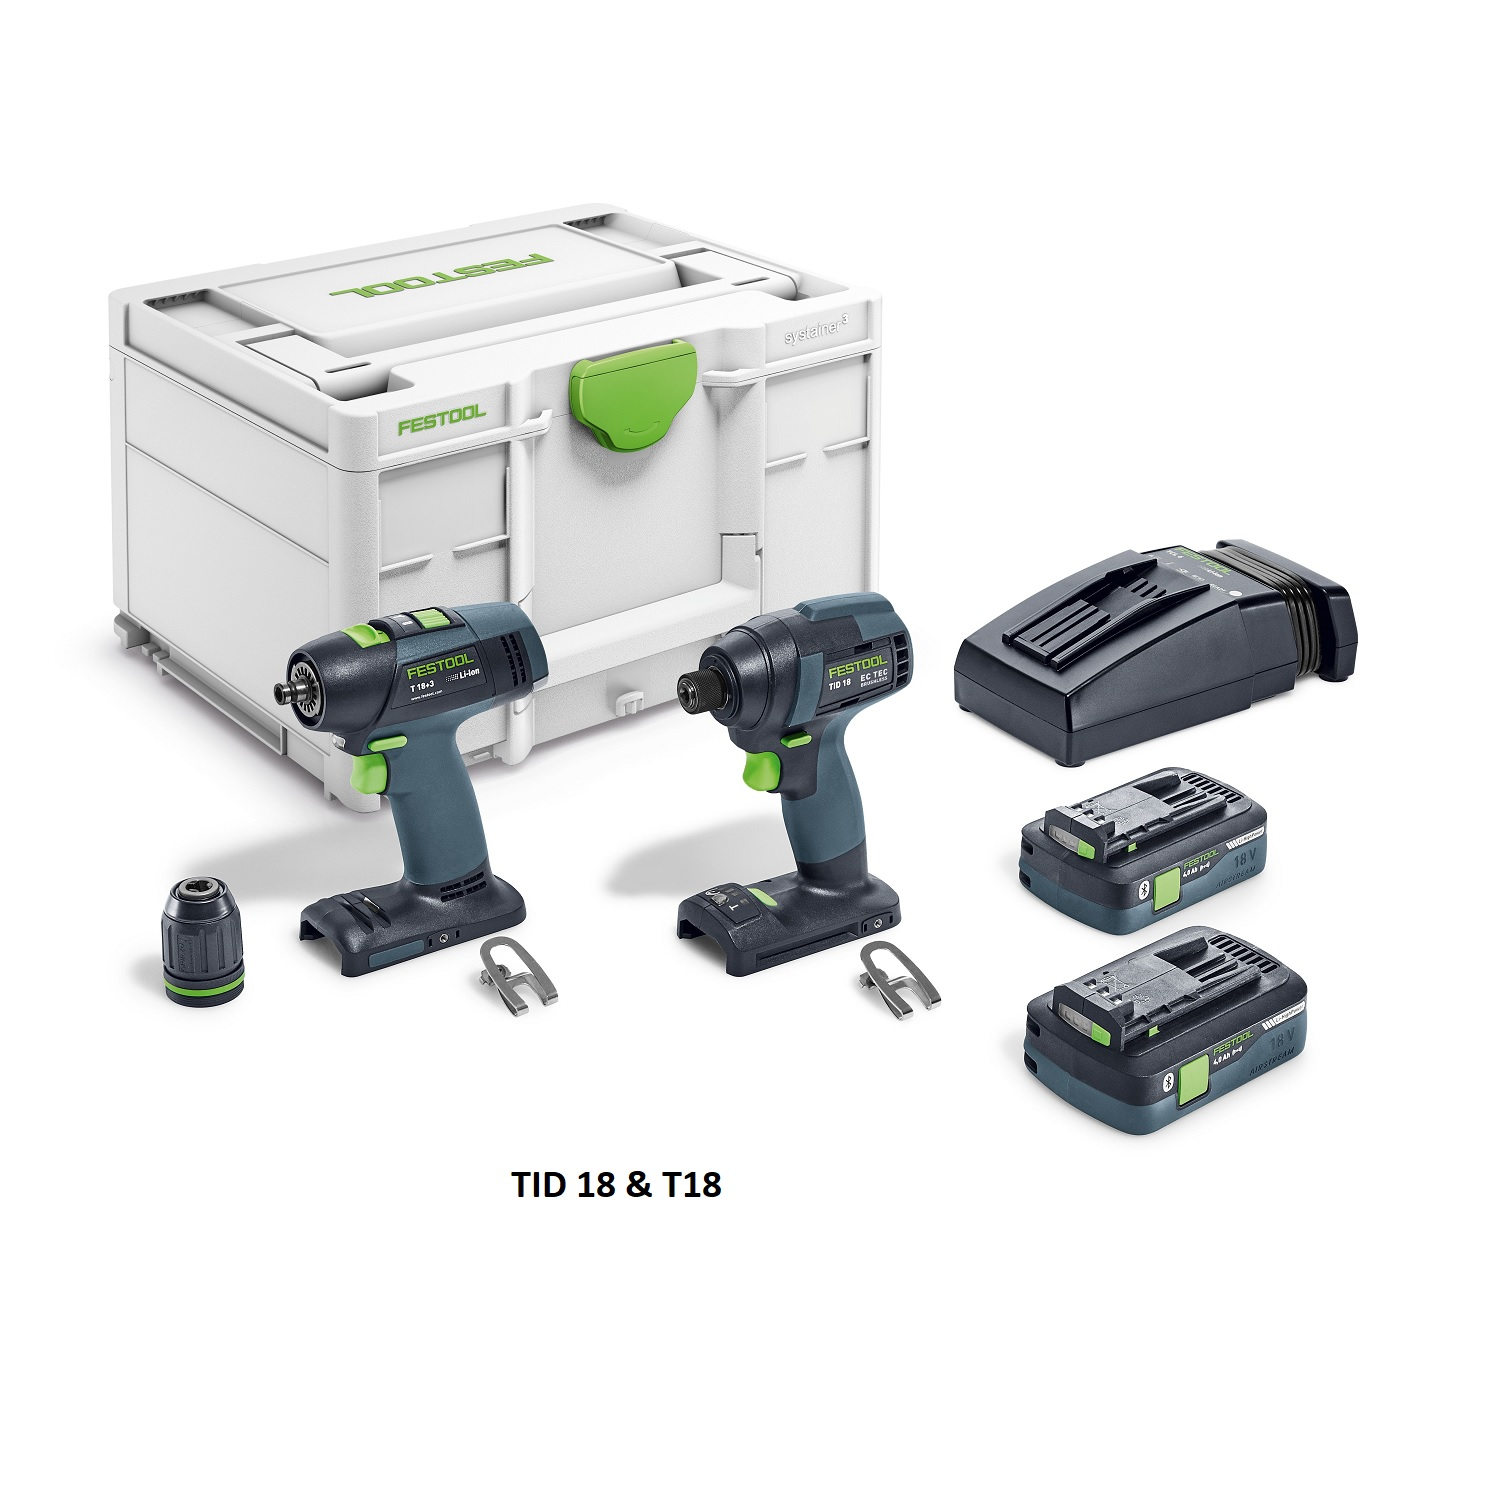 Festool Drill and Impact Driver Sets